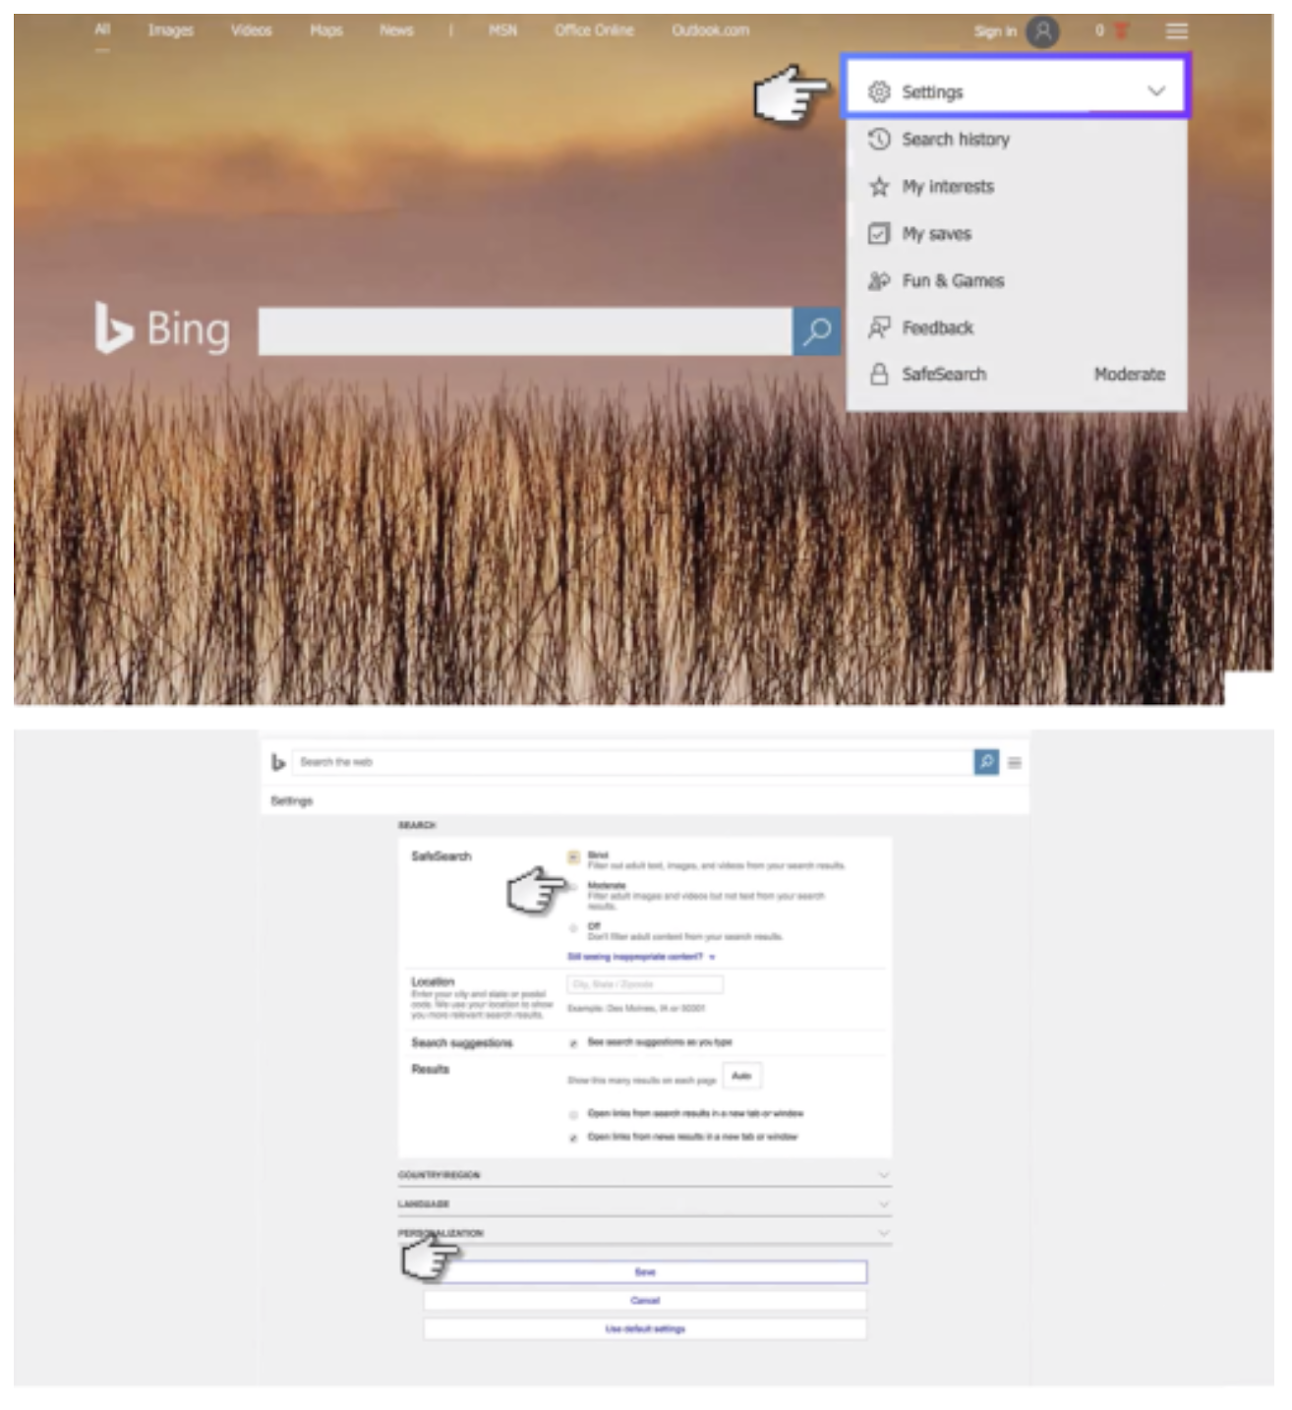 Enable SafeSearch Filters in Bing